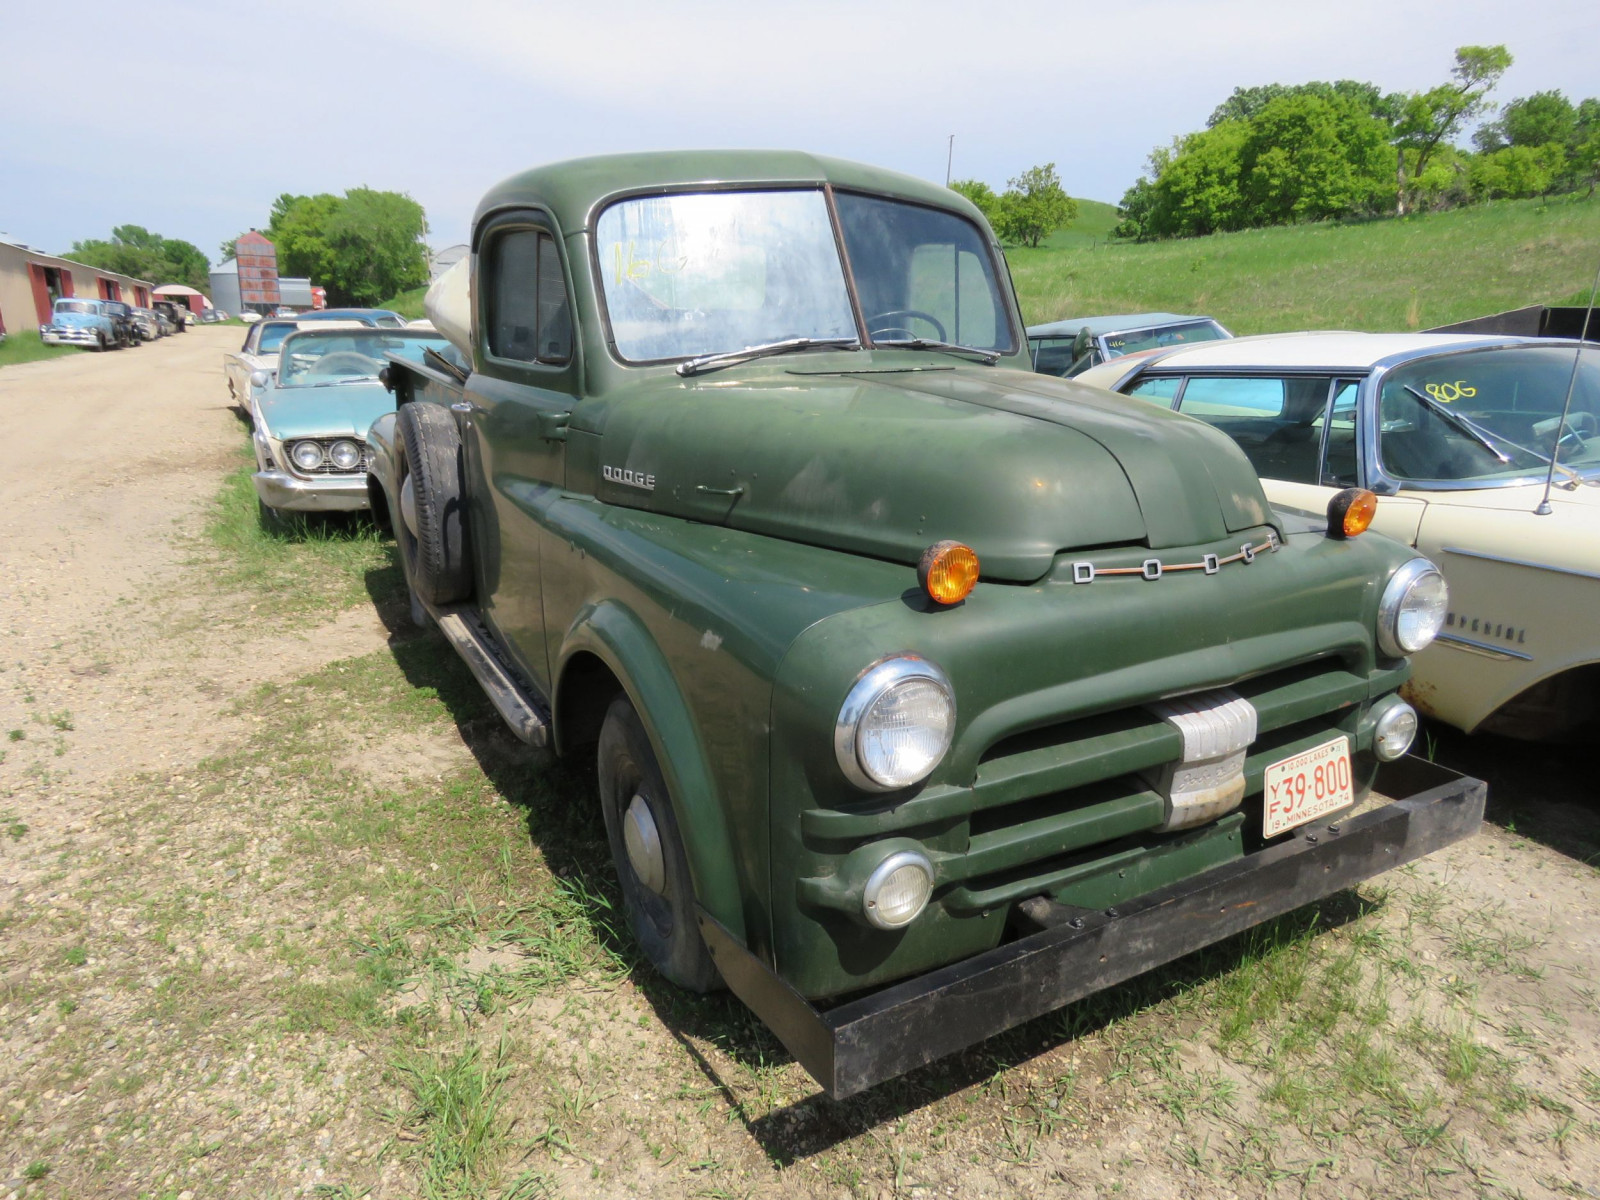 1953 Dodge Job Rated Pickup 83395544 - Image 1